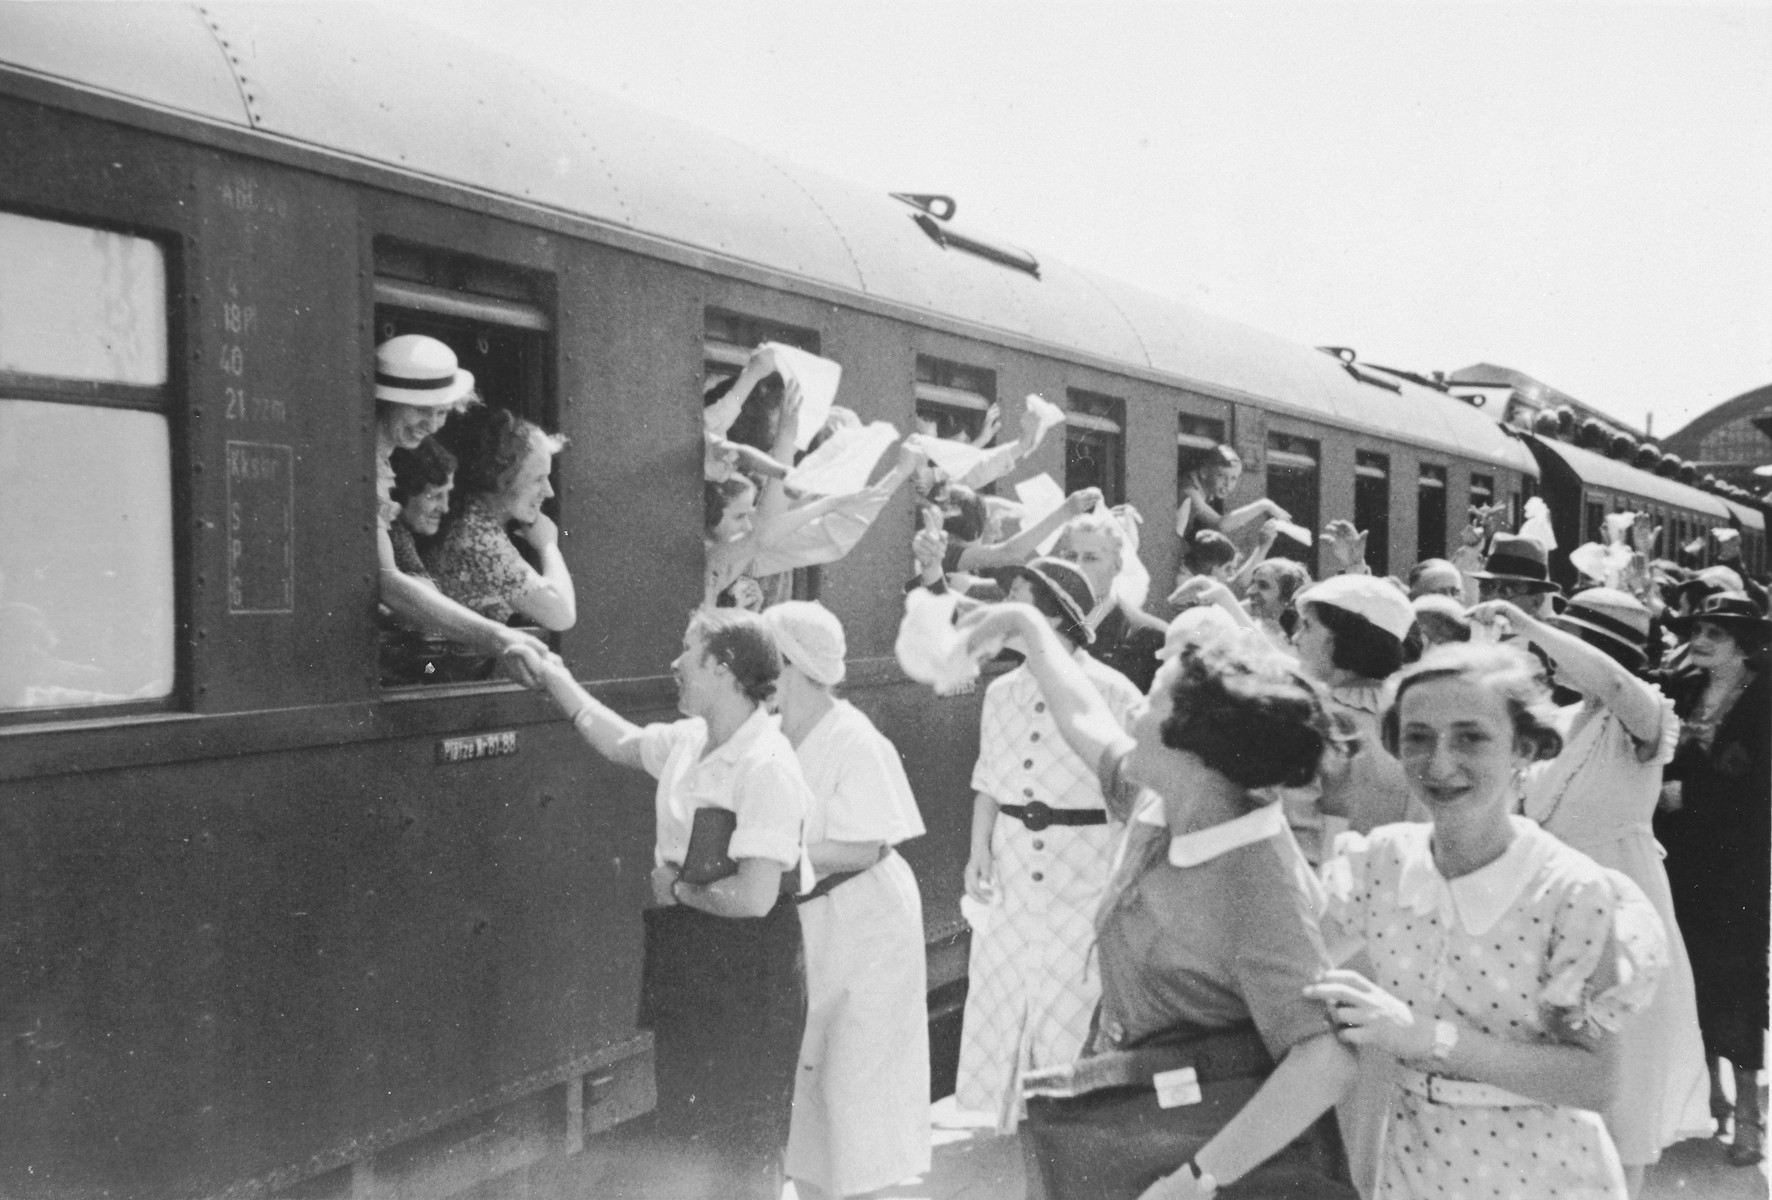 Jewish children from Germany depart by train from a Kinderlager [children's recreational summer camp] in Horserod, Denmark.    In 1935-36 Norbert Wollheim was involved in organizing groups of German Jewish youth to attend a summer camp in Denmark.